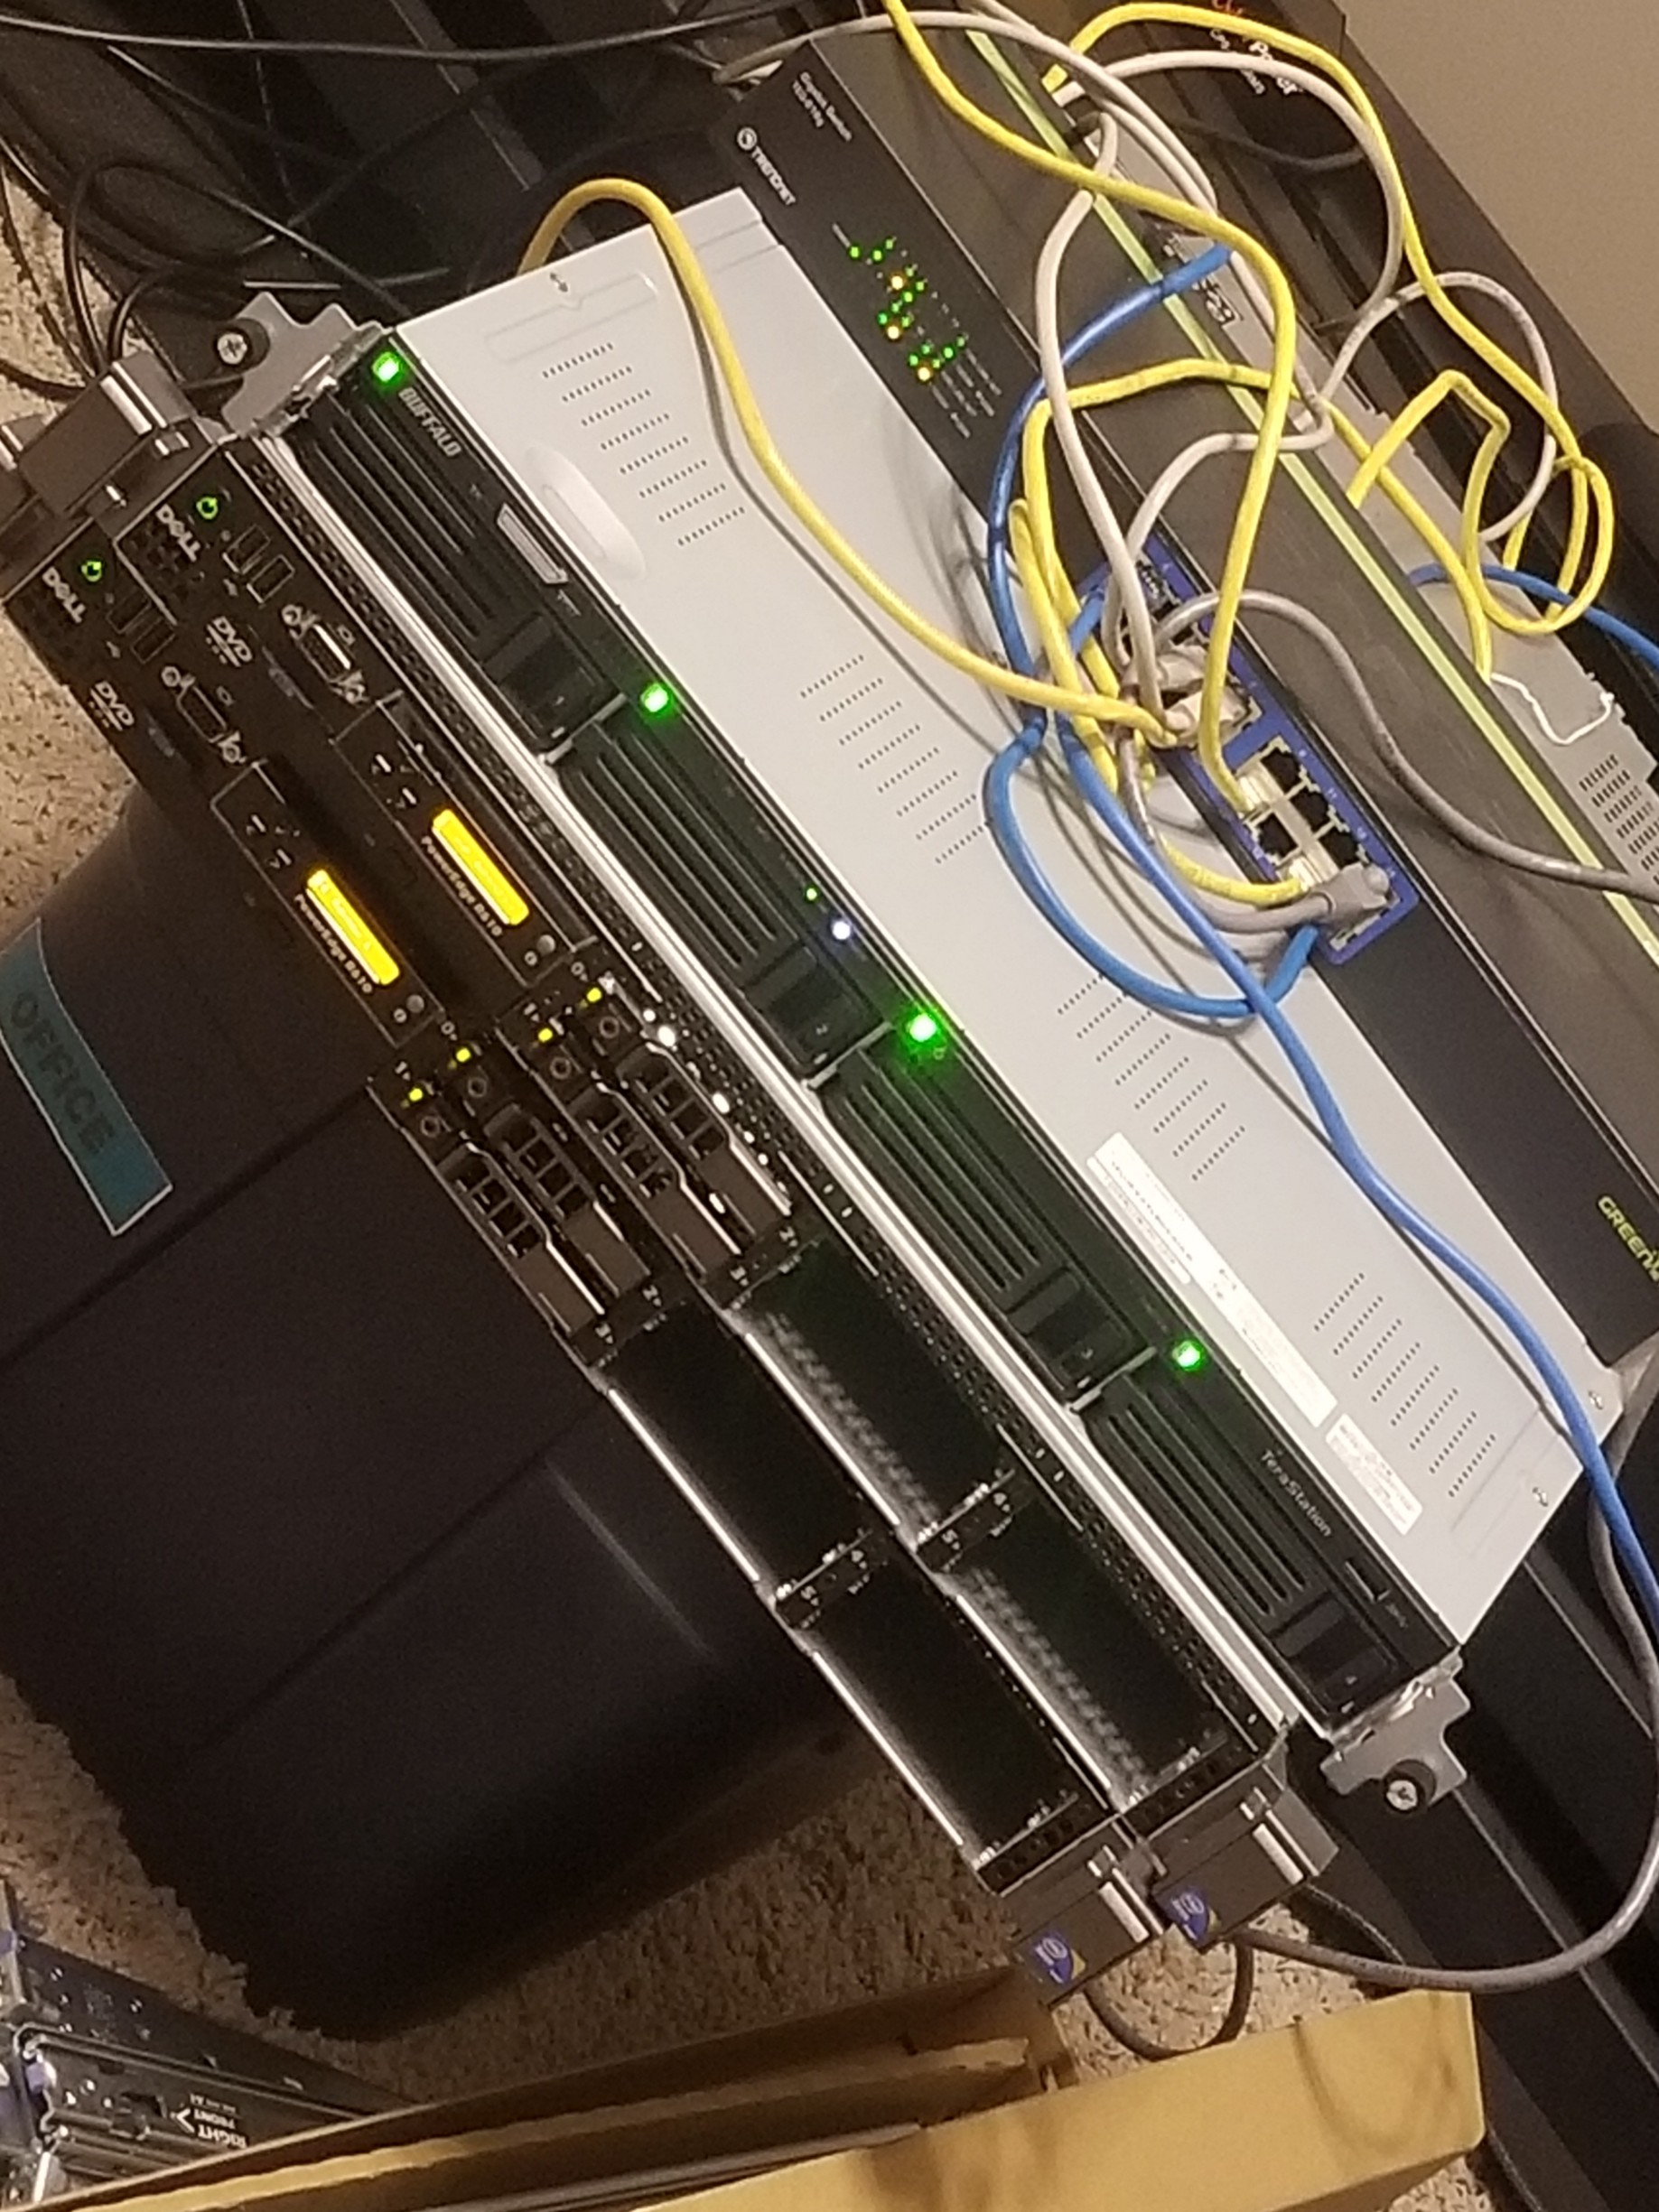 Configuring Ansible Tower to use Red Hat Virtualization for inventory